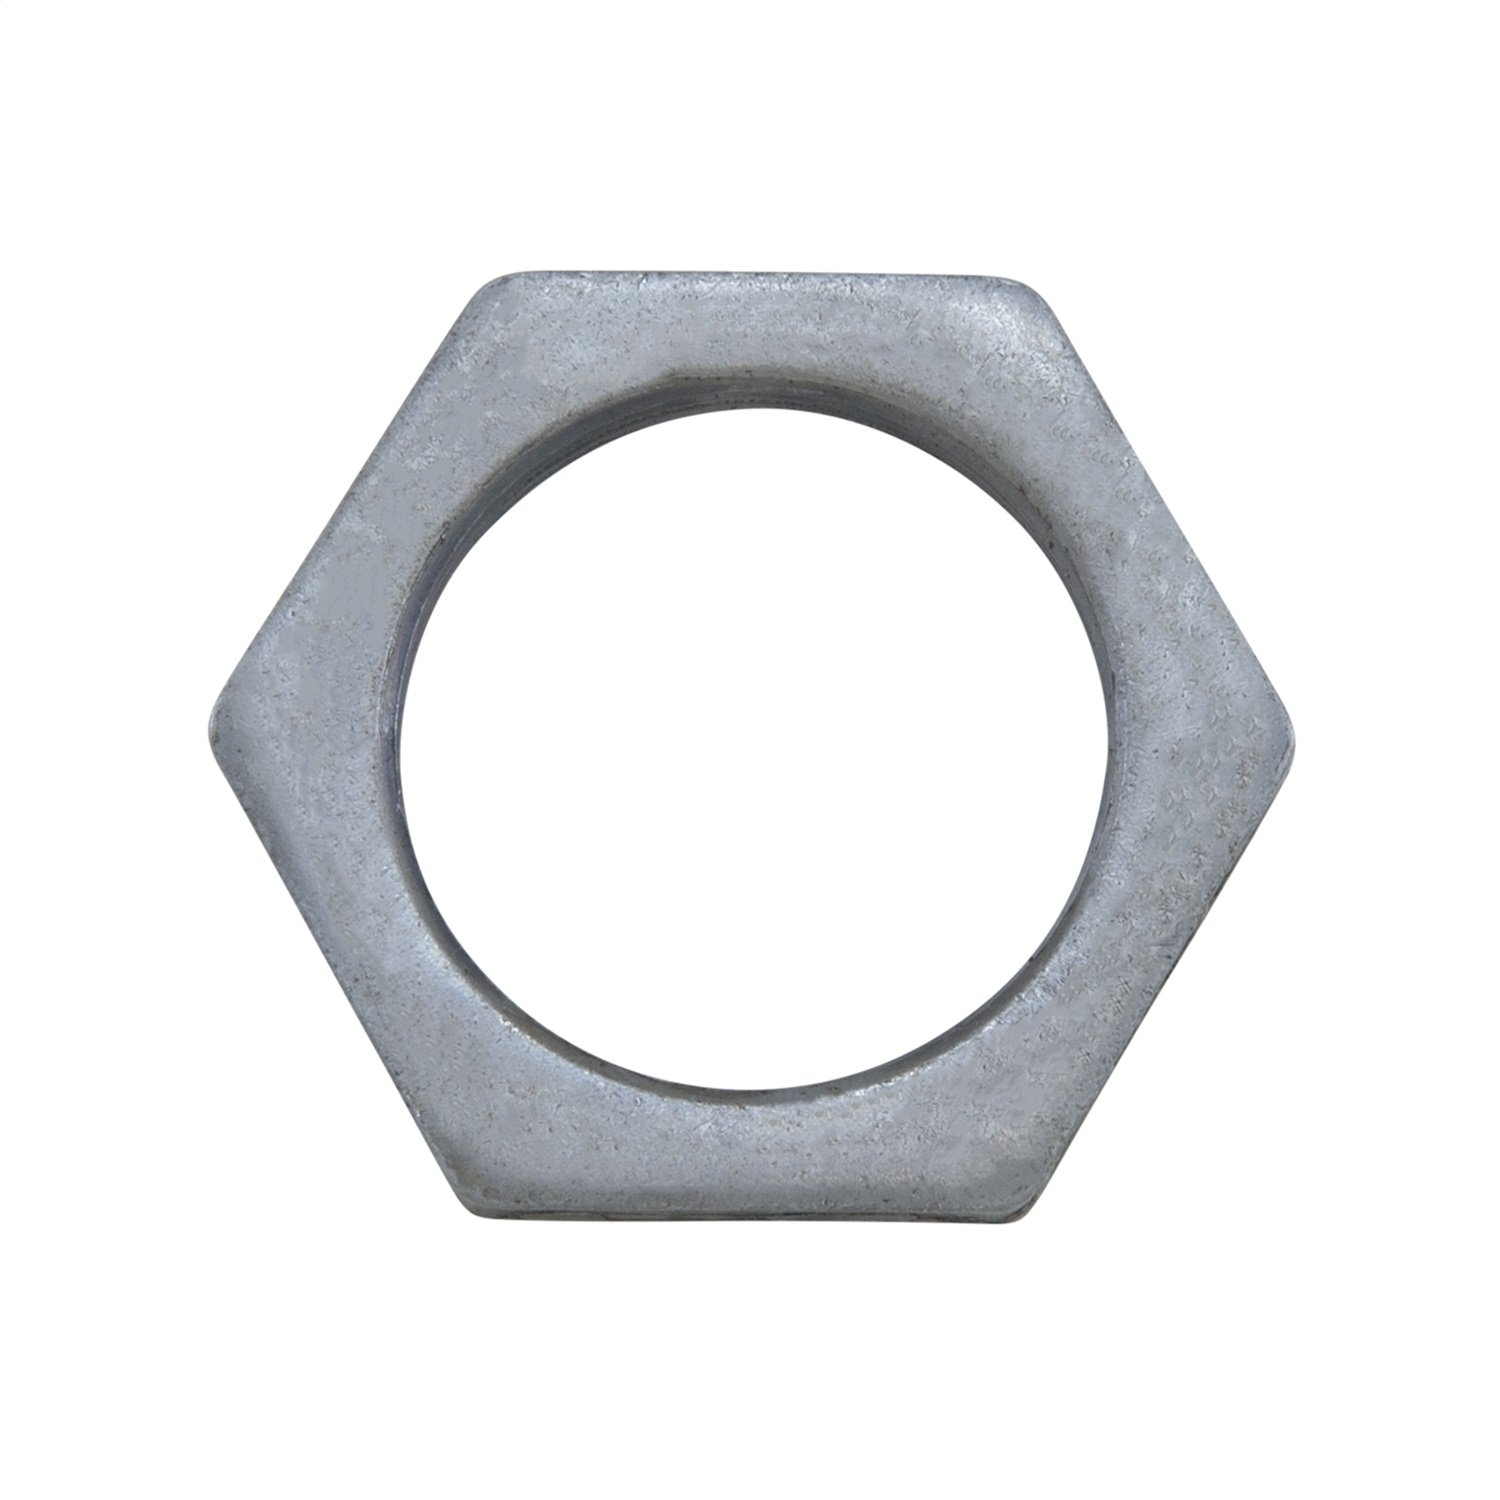 Yukon (YSPSP-004) 1.830'' I.D. Spindle Nut Retainer for Dana 60/70 Differential